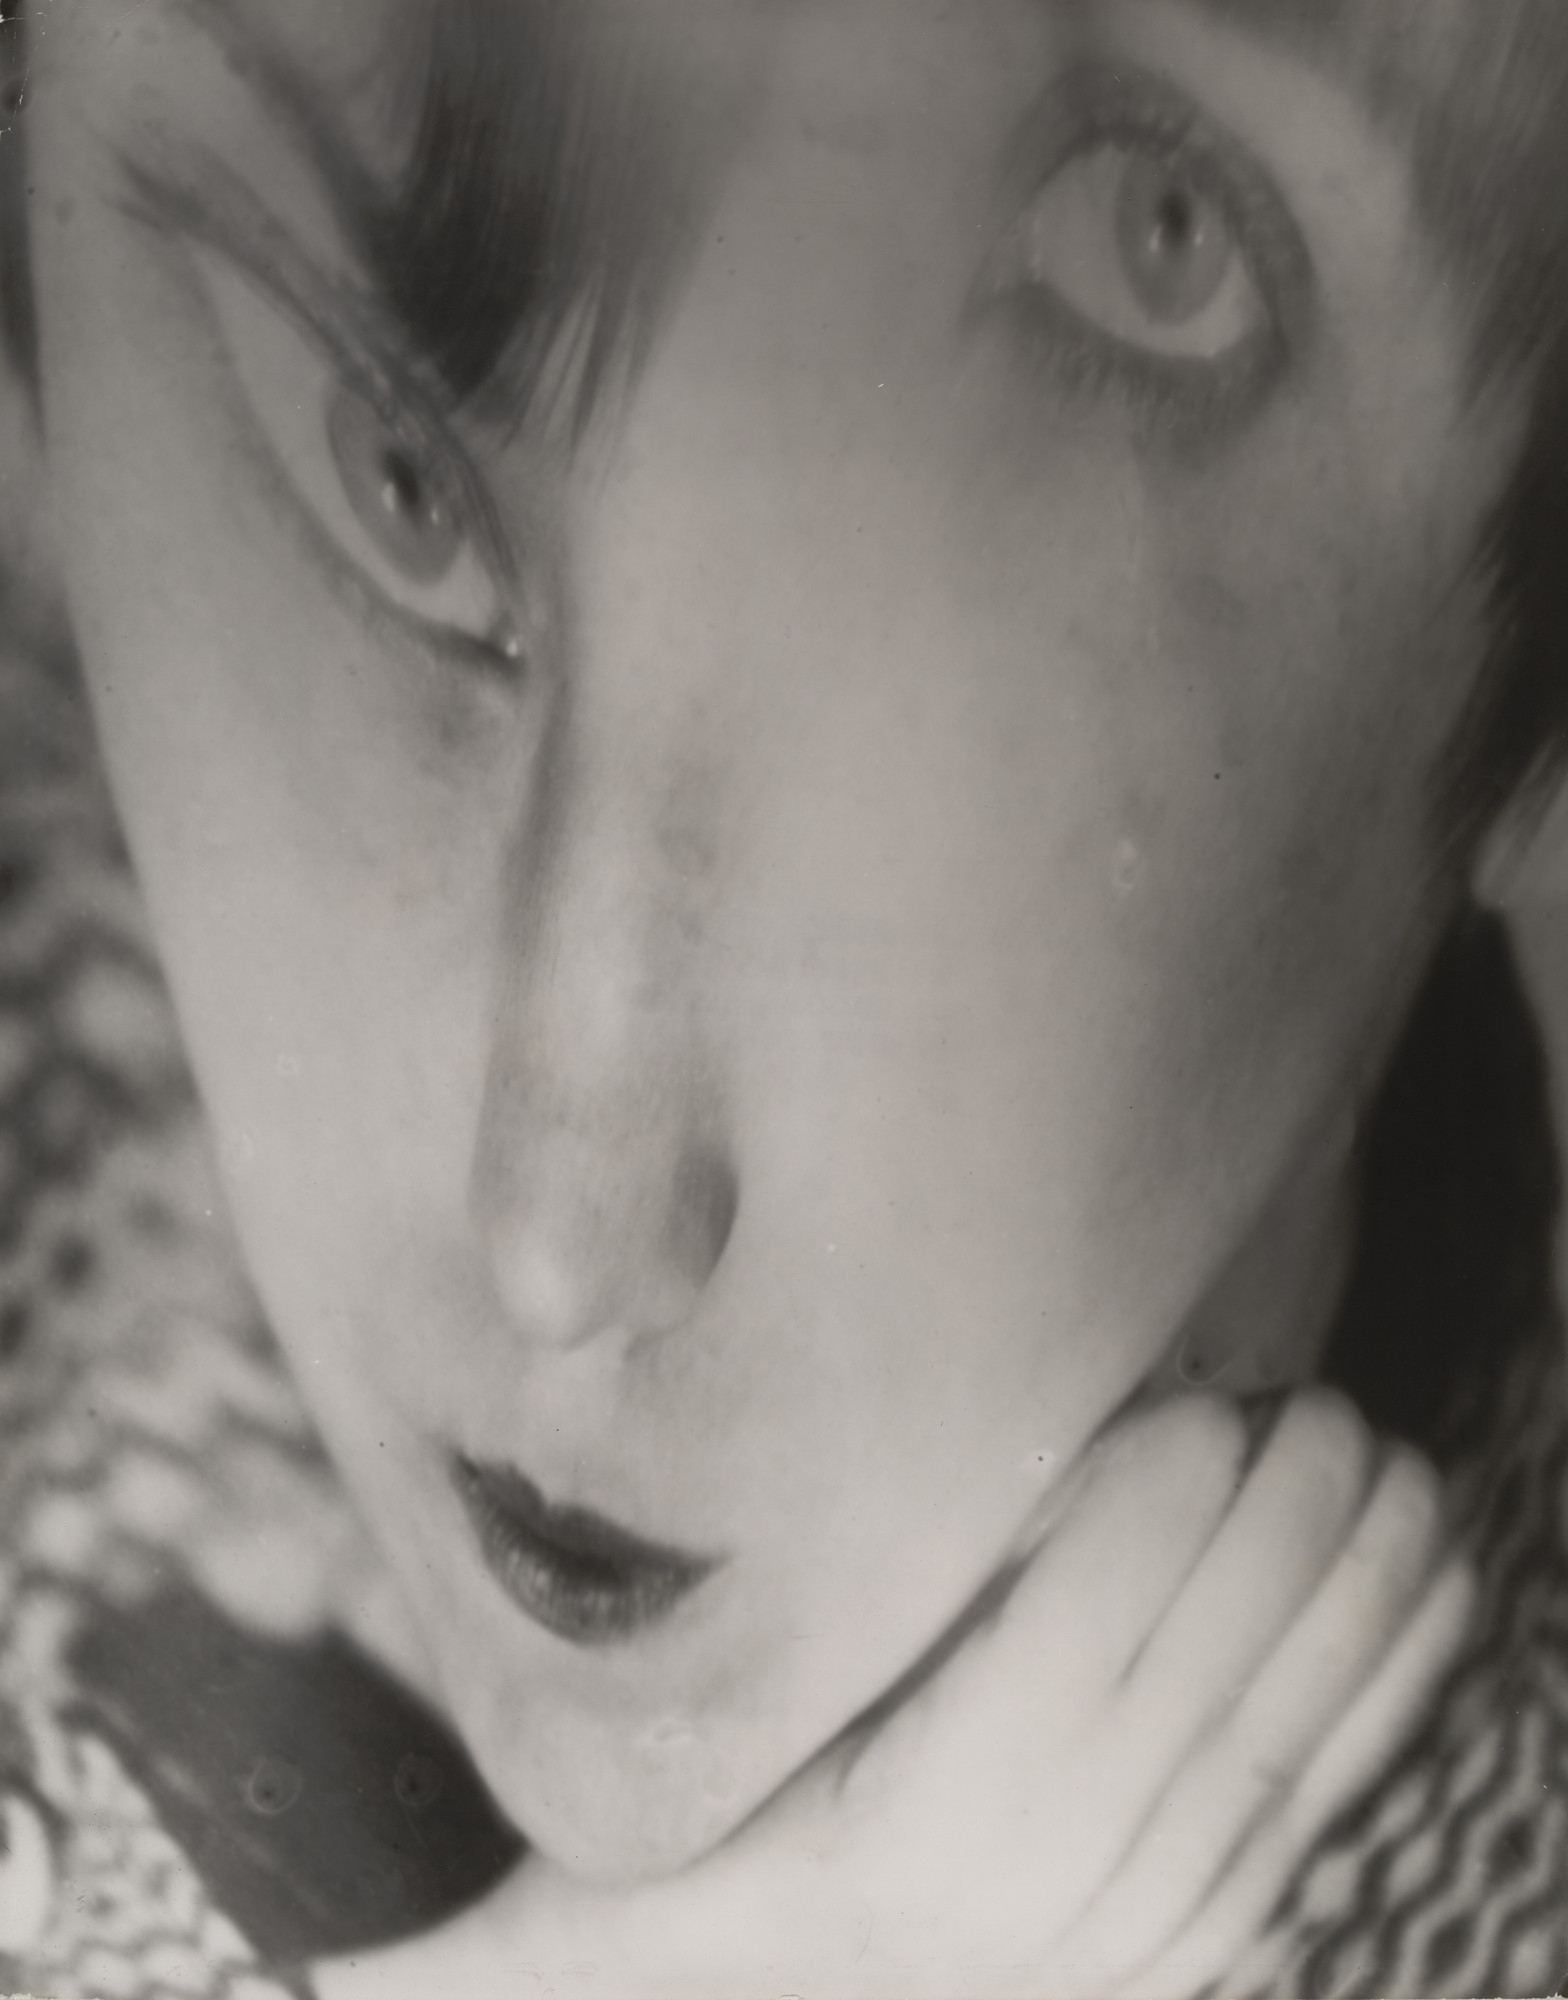 Berenice Abbott. Portrait of the Artist as a Young Woman. Negative c. 1930/Distortion c. 1950